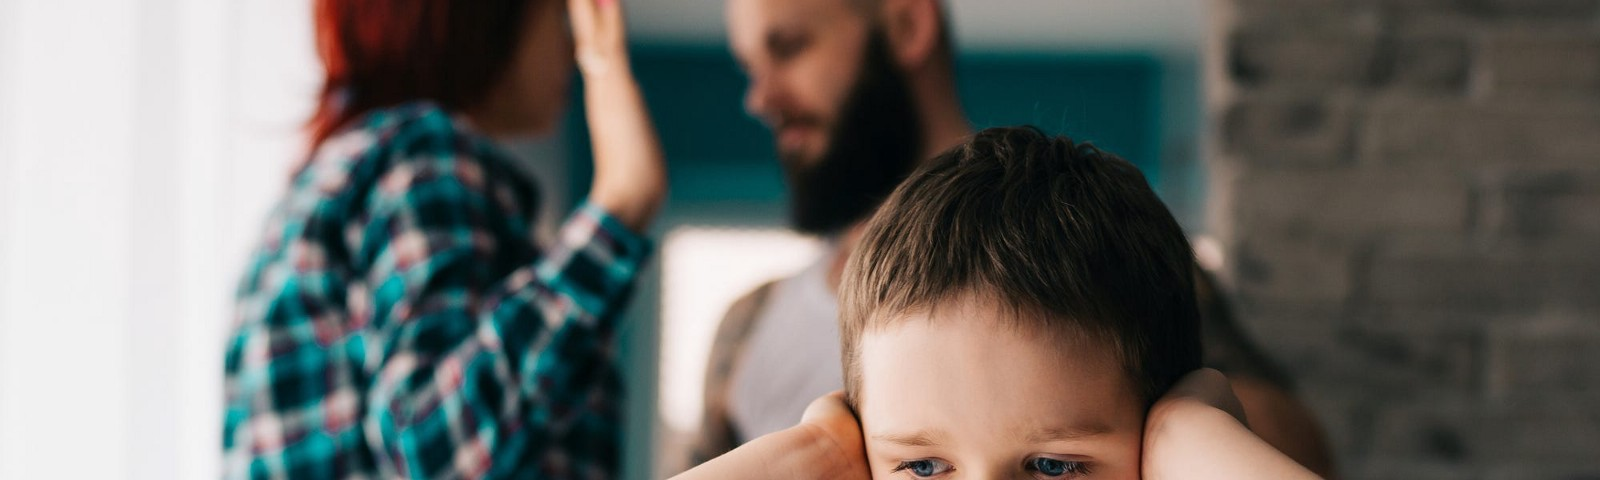 Being unreceptive to your child's emotions can stunt their emotional and mental growth.